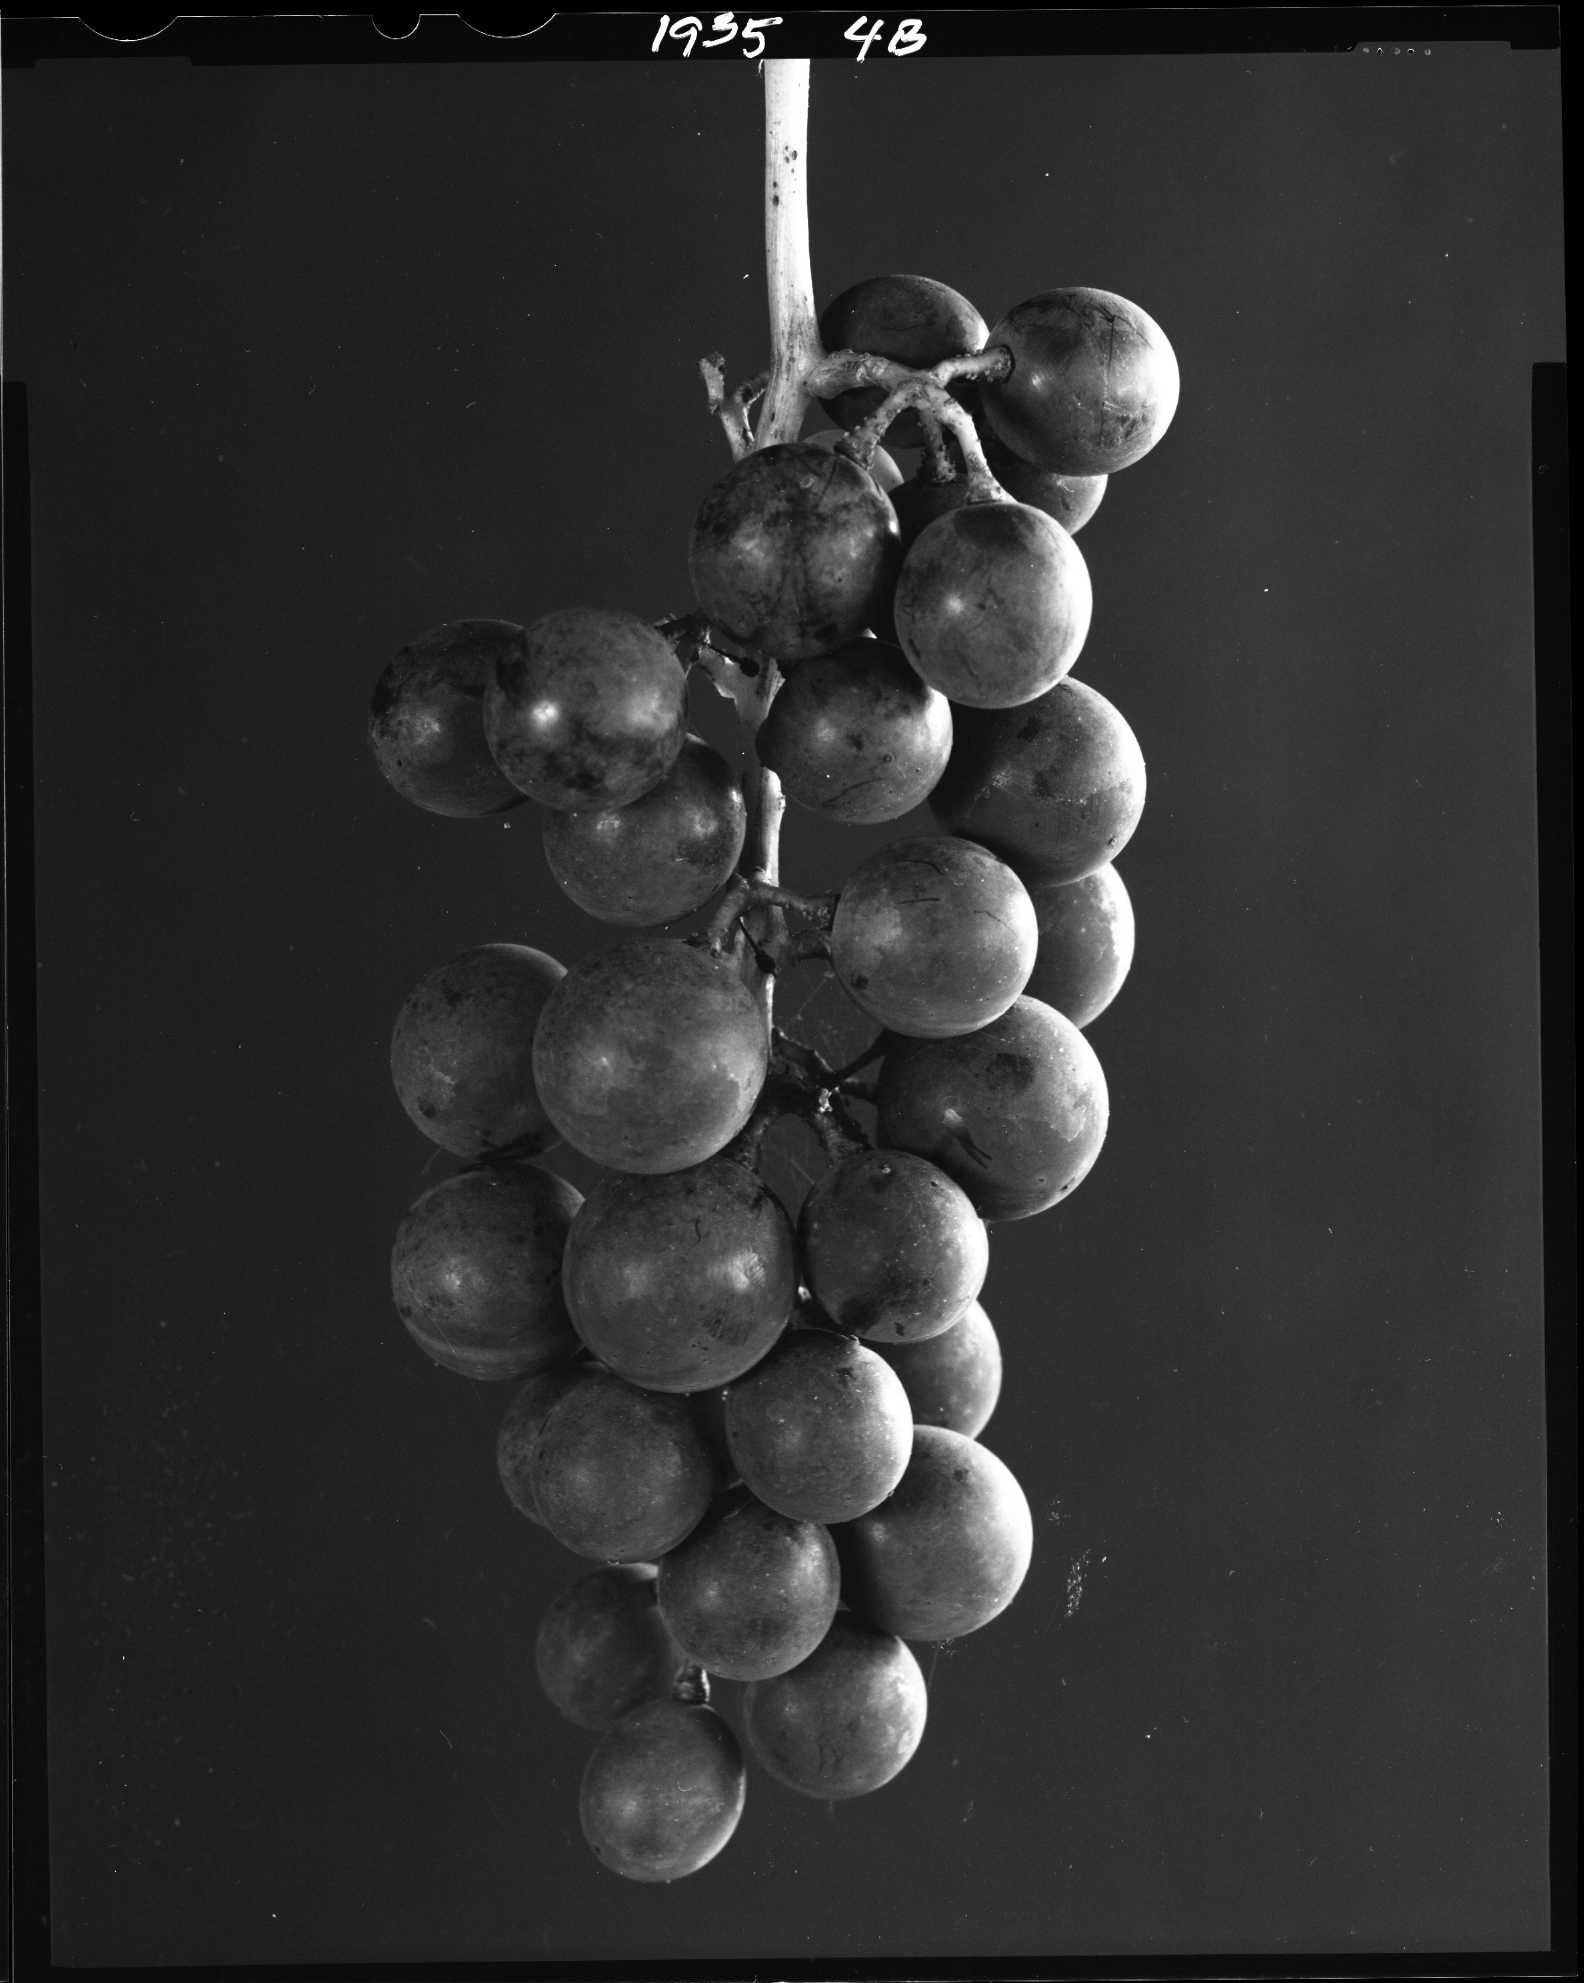 Concord grapes, from the Produce Series